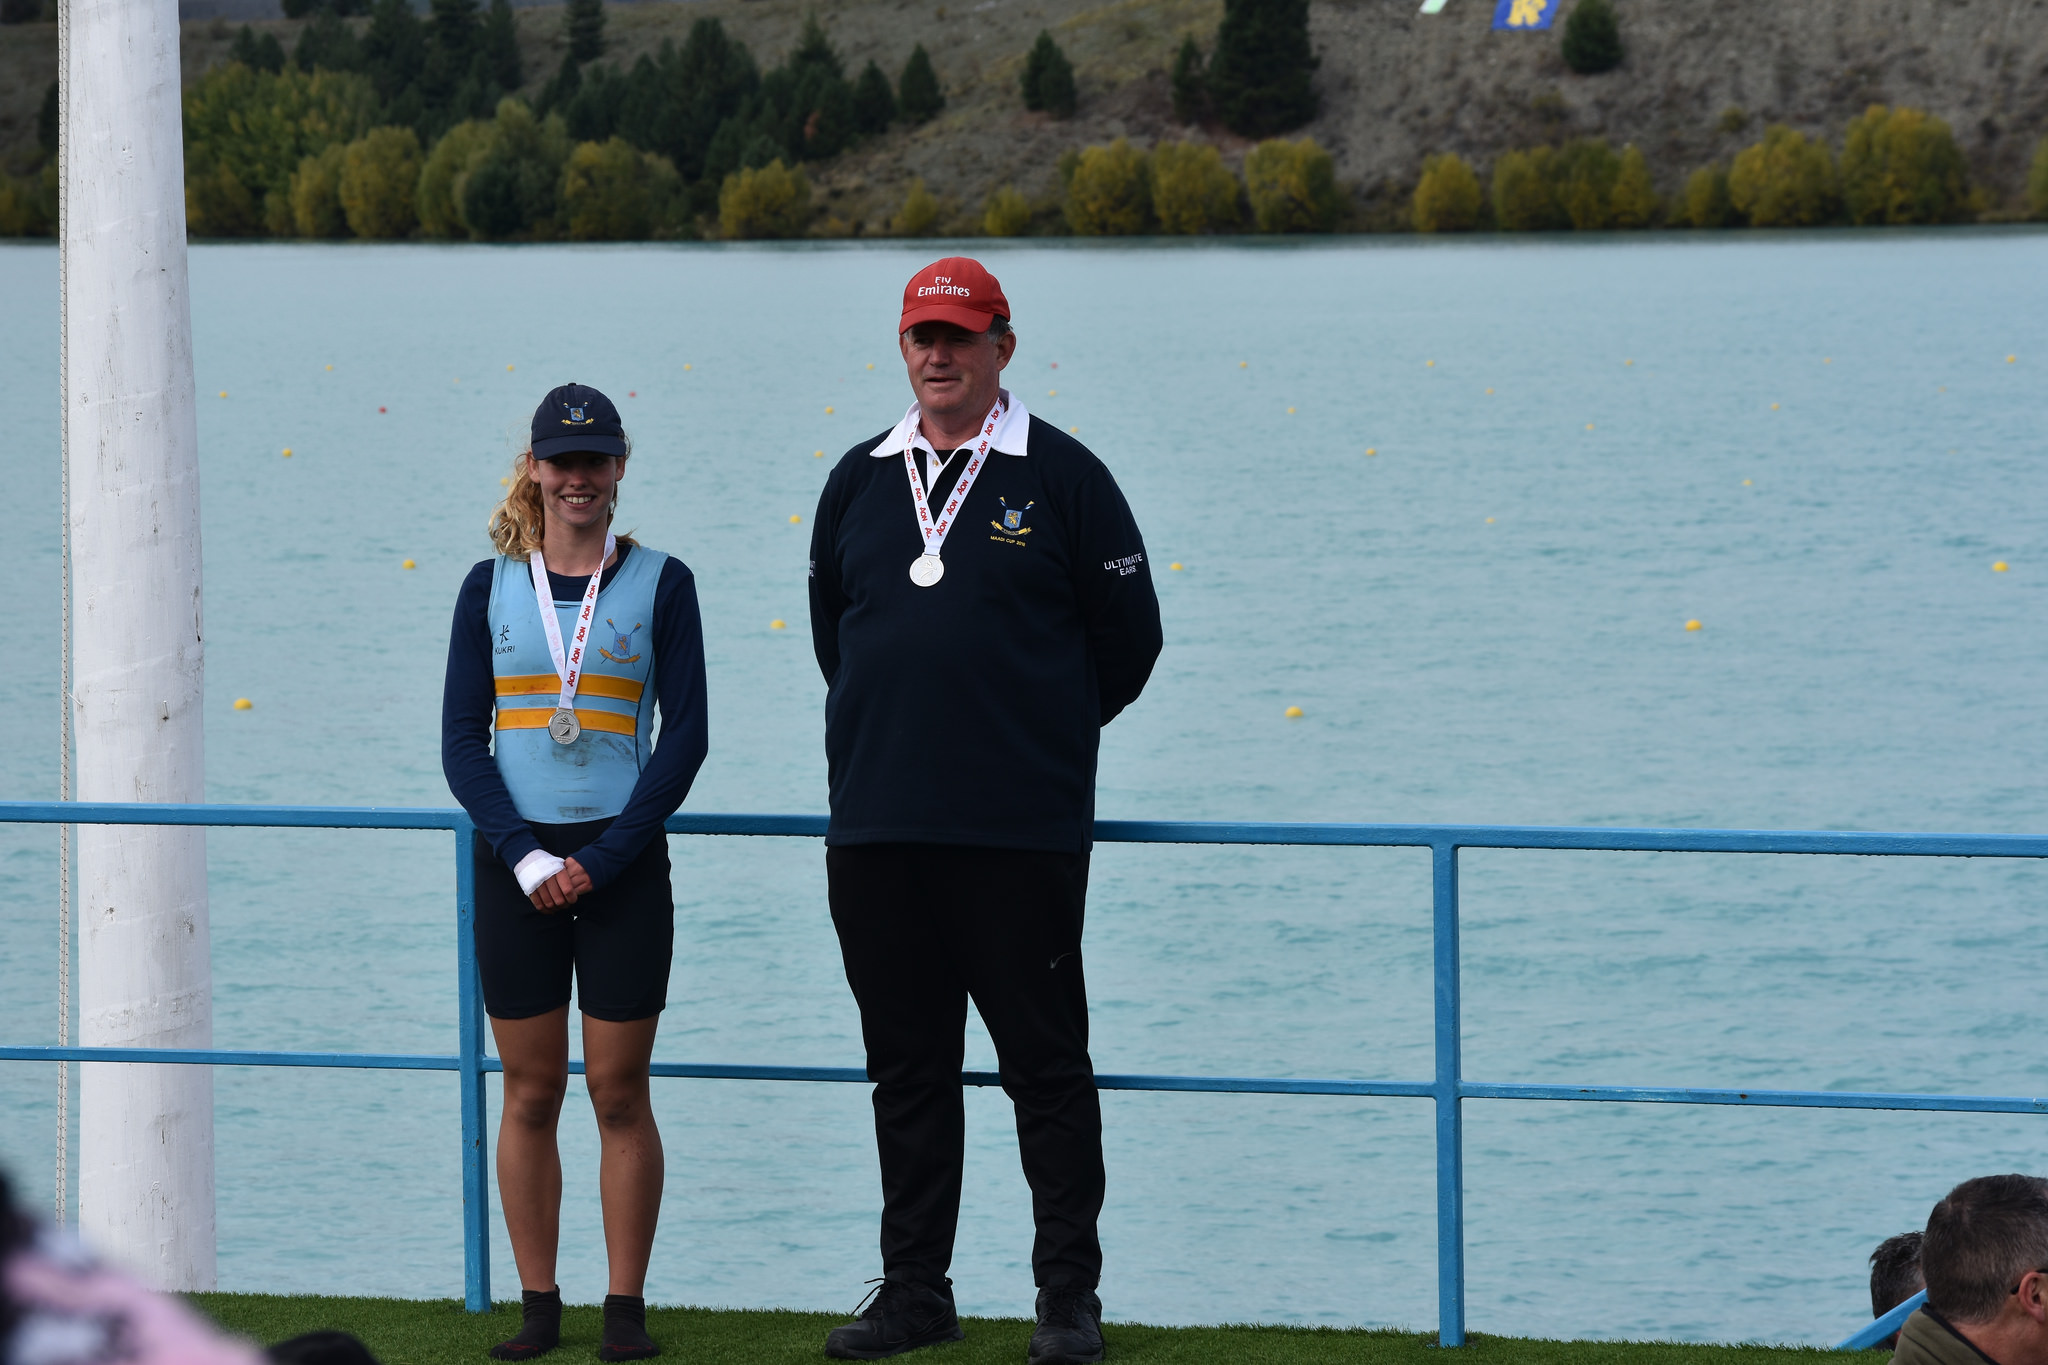 Holly Chaafe - G U16 1X Silver medalist in the NZ Secondary Schools Rowing Championship Regatta. Coach John Cook.